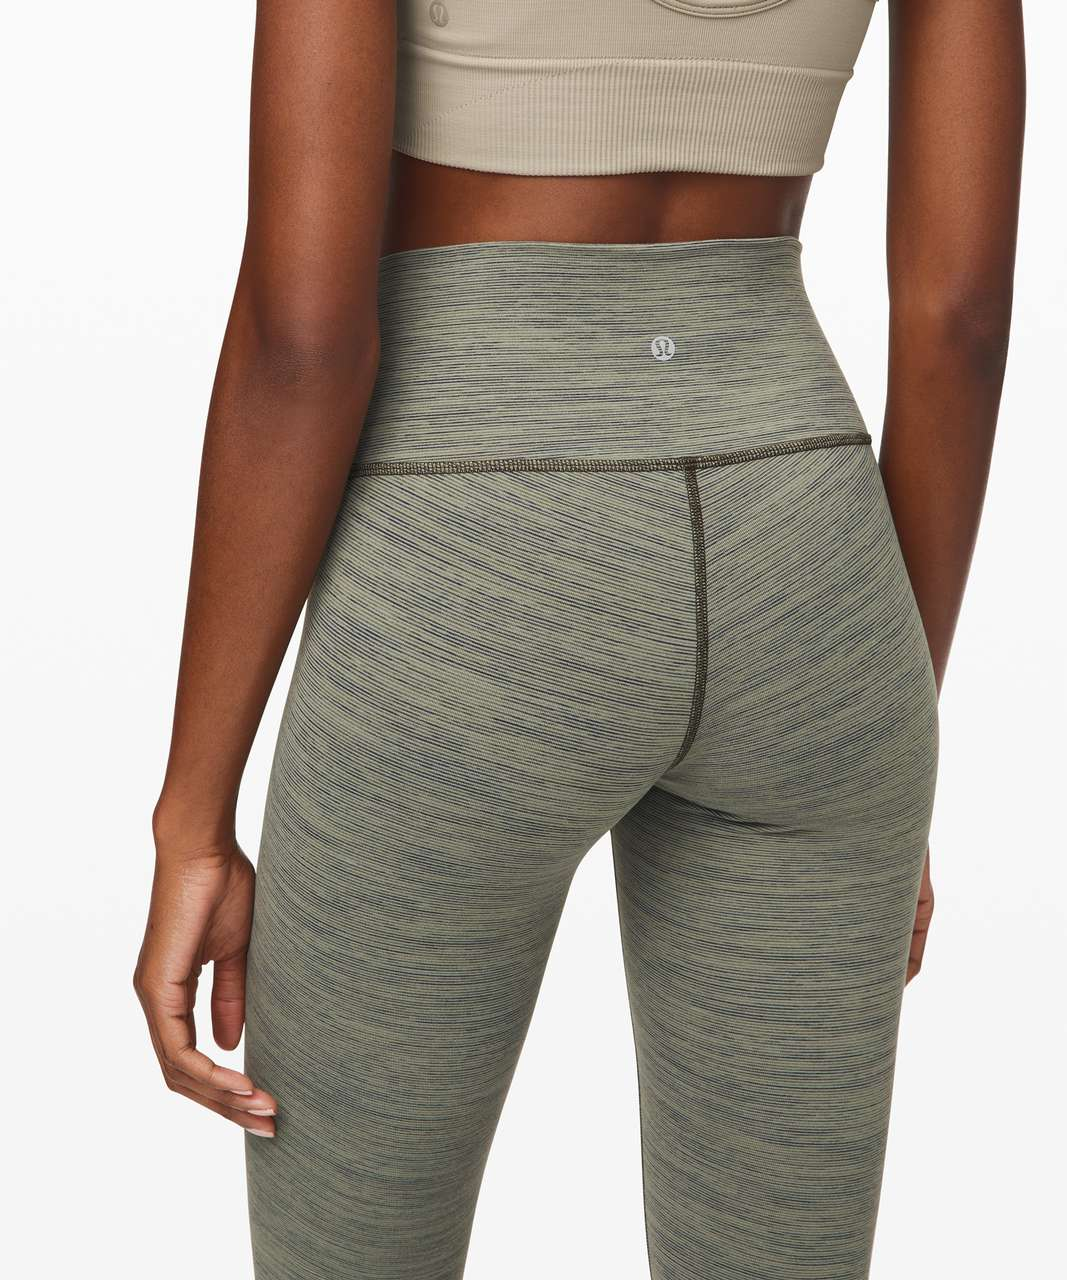 "Lululemon Wunder Under Crop (High-Rise) *Luxtreme 21"" - Wee Are From Space Sage Dark Olive"